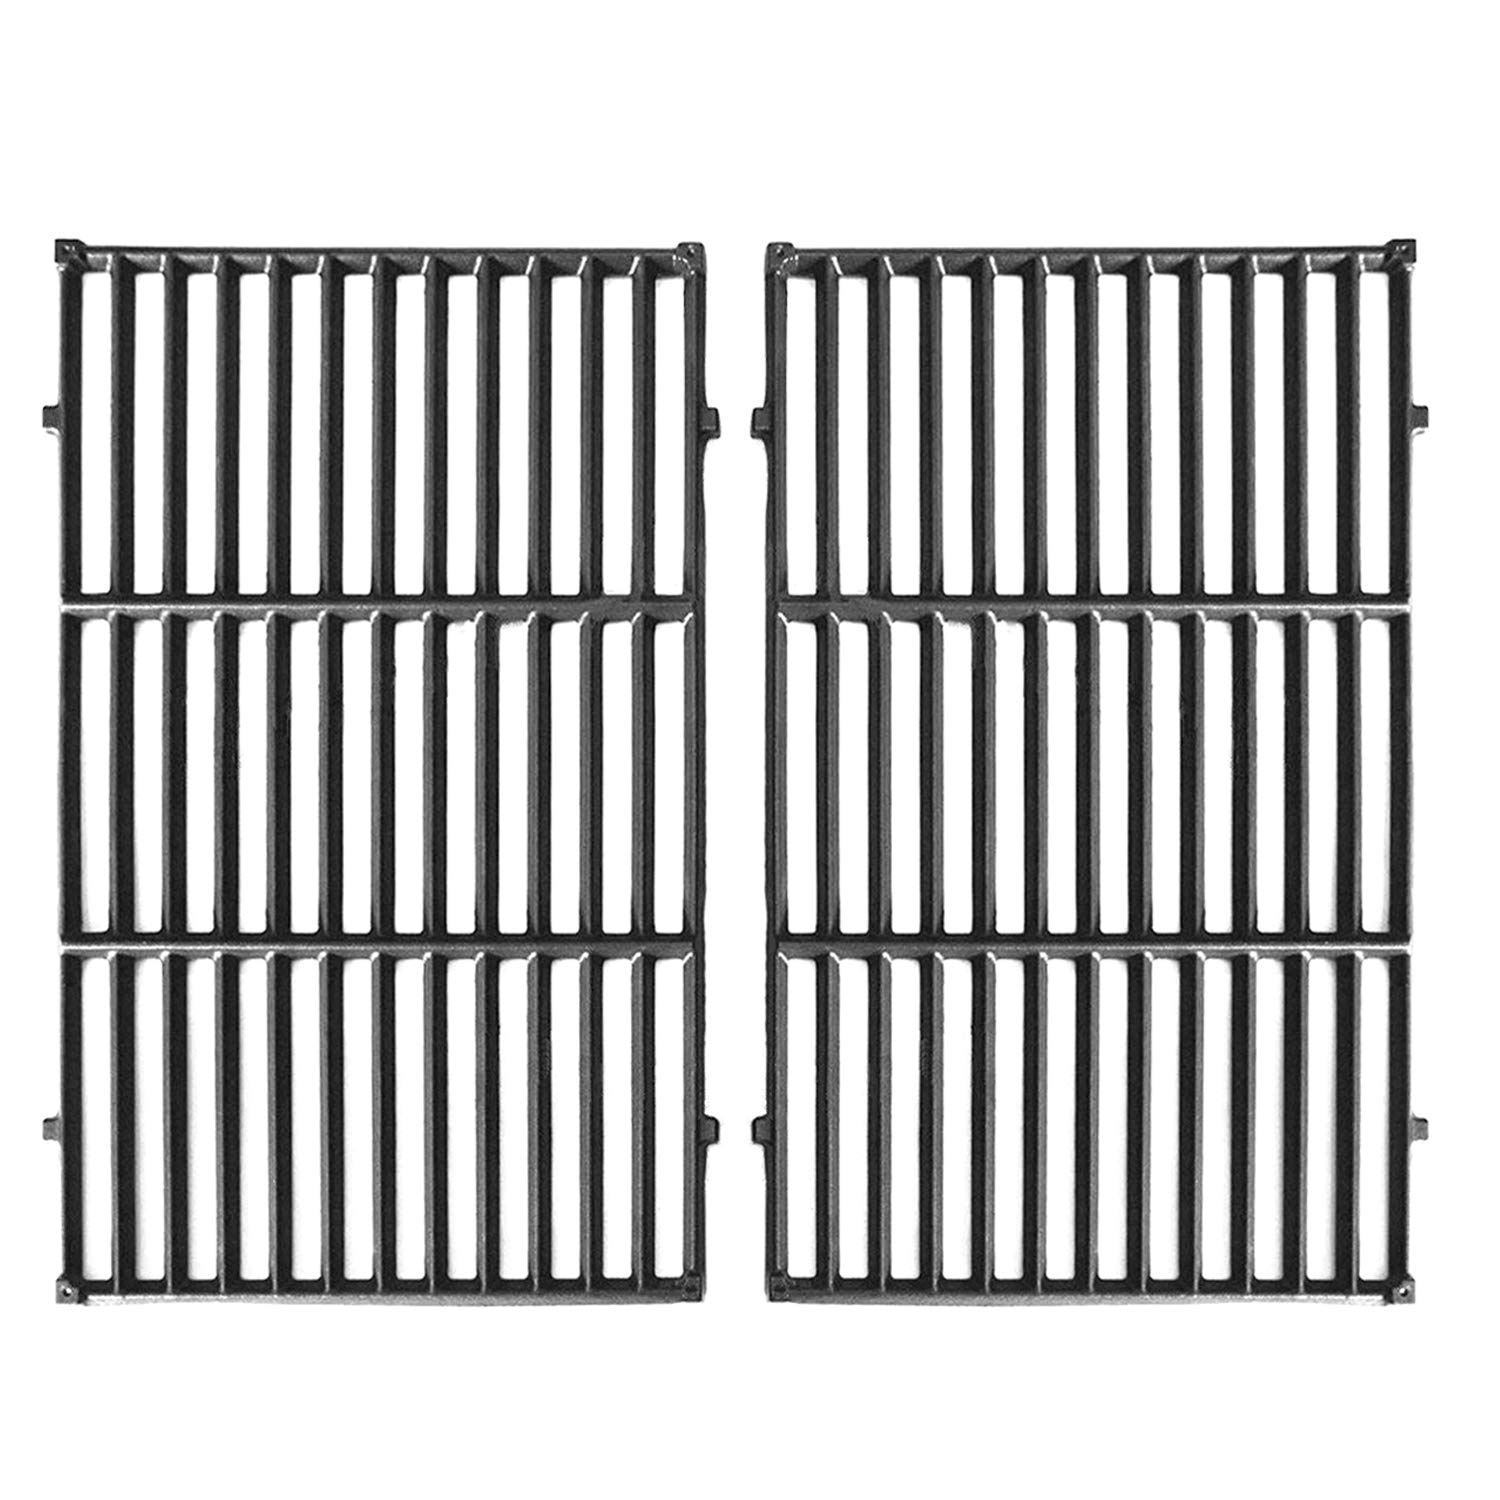 Hongso 7524 Cast Iron Cooking Grid Grates Replacement for Weber Genesis E/S, 300 Series Gas Grill 7528, (19.5'' x 13''), 2-Pack, PCG524 by Hongso